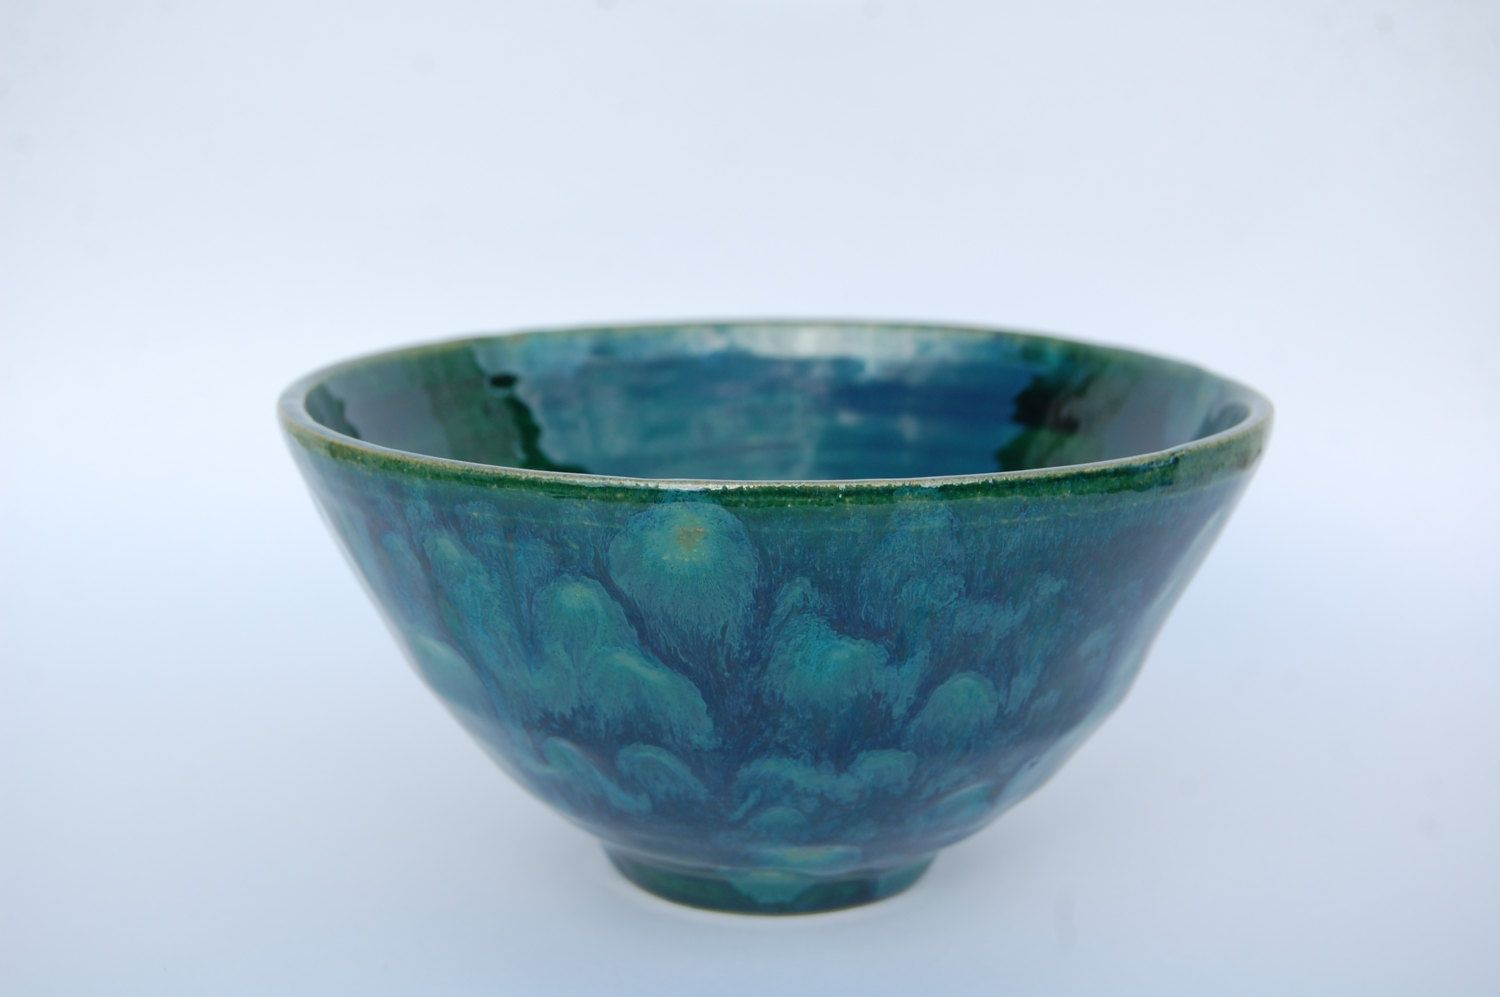 Decorative Ceramic Bowls Decorative Pottery Bowl Handmade In Uk Green And Blue Ceramic Bowl